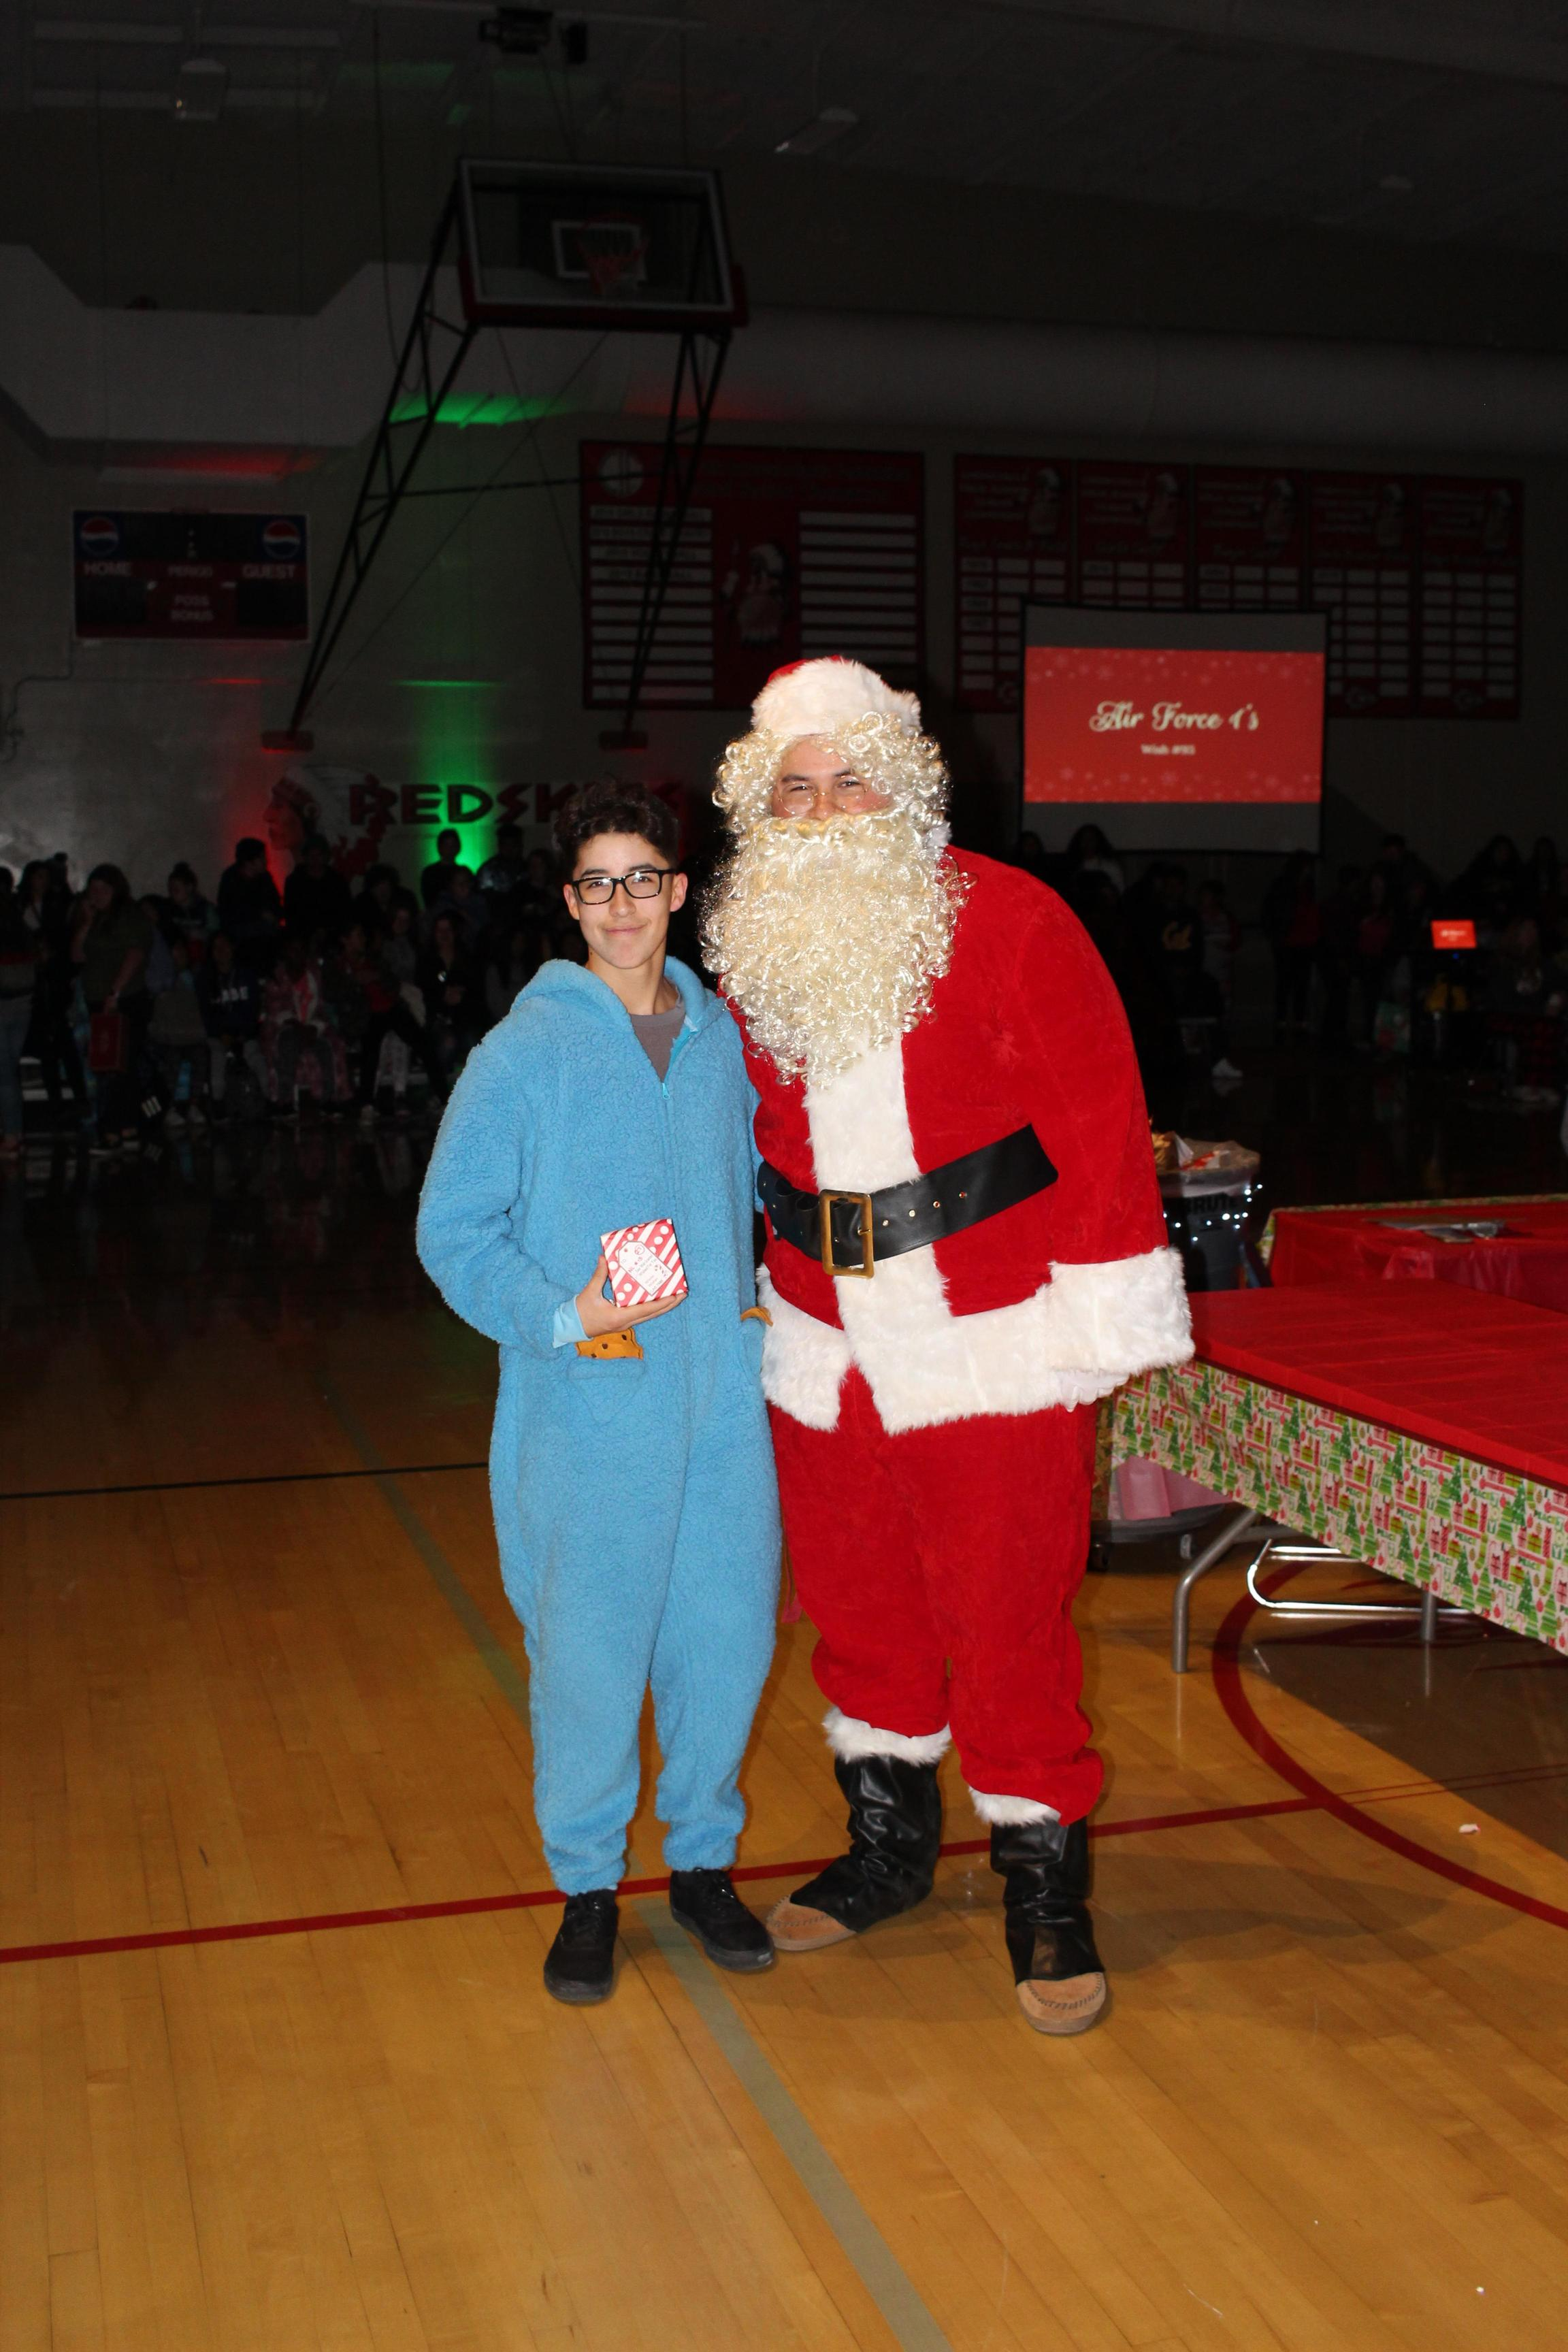 Ryan Diaz and Santa